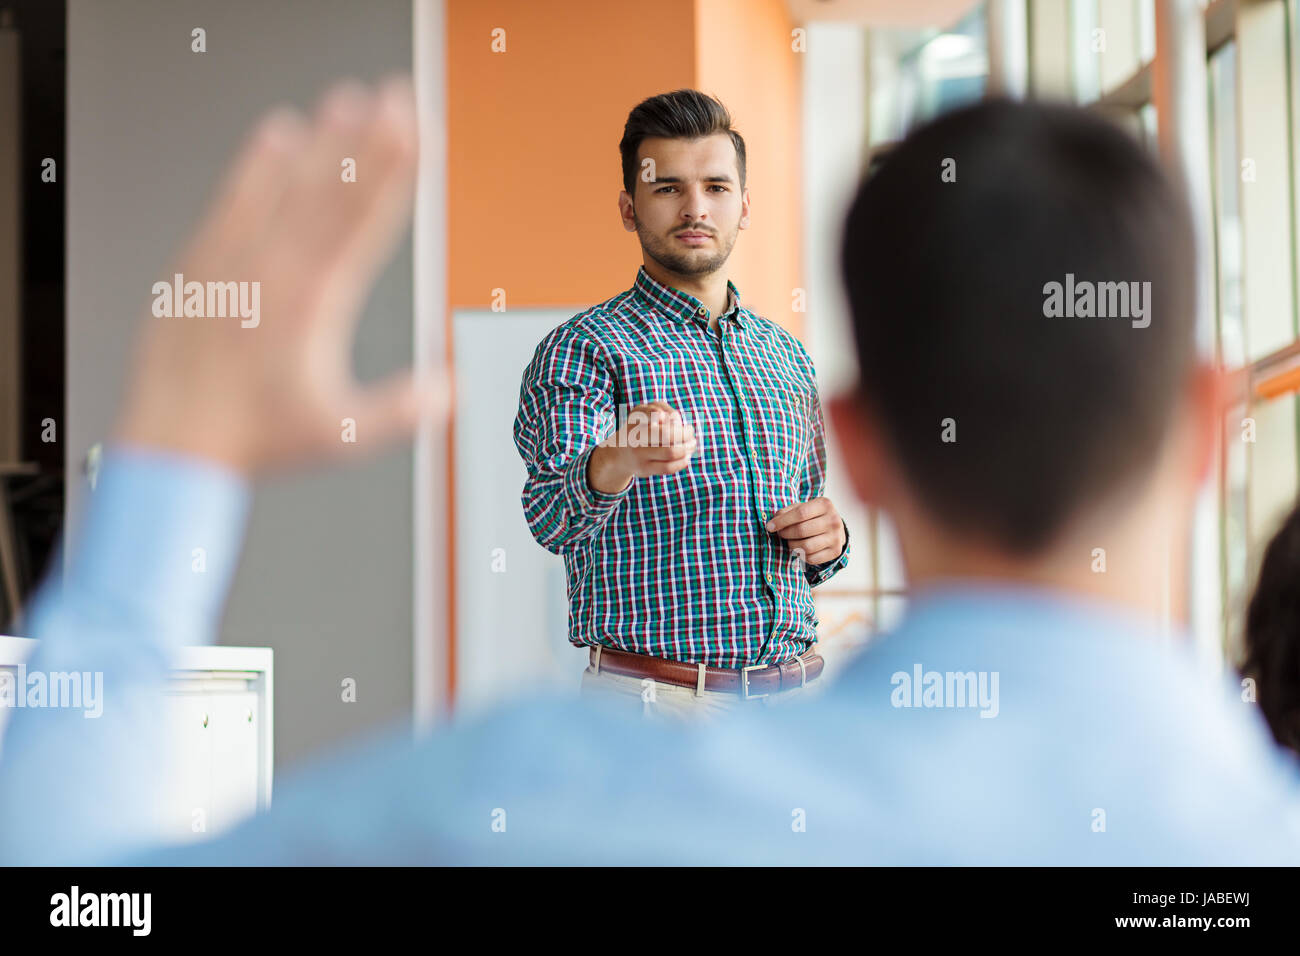 Business people Raising there Hand Up at a Conference to answer a question - Stock Image